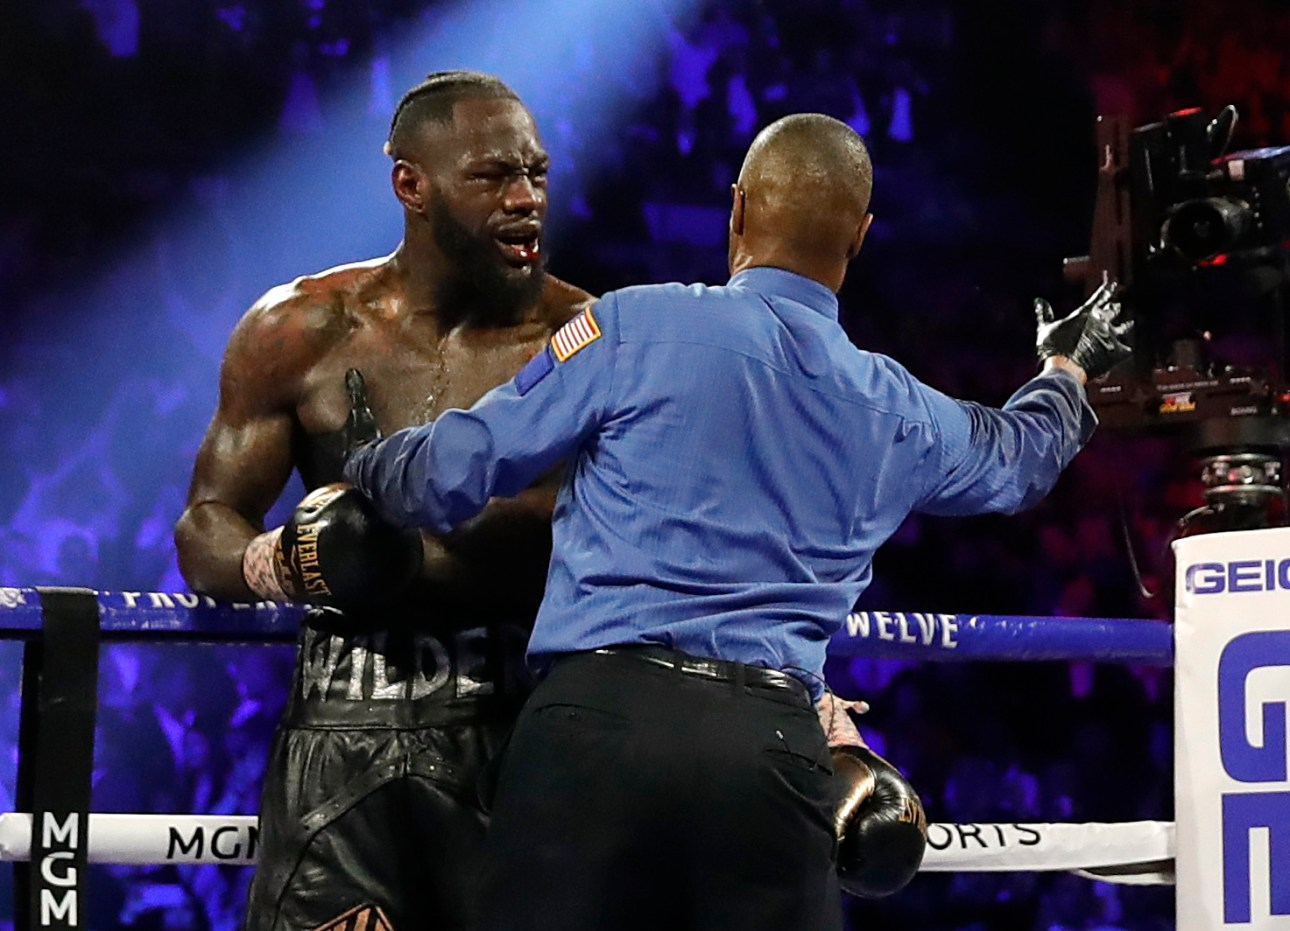 """Deontay Wilder-about the trilogy with Tyson Fury """"Do you think they won't try to cheat this time?"""""""